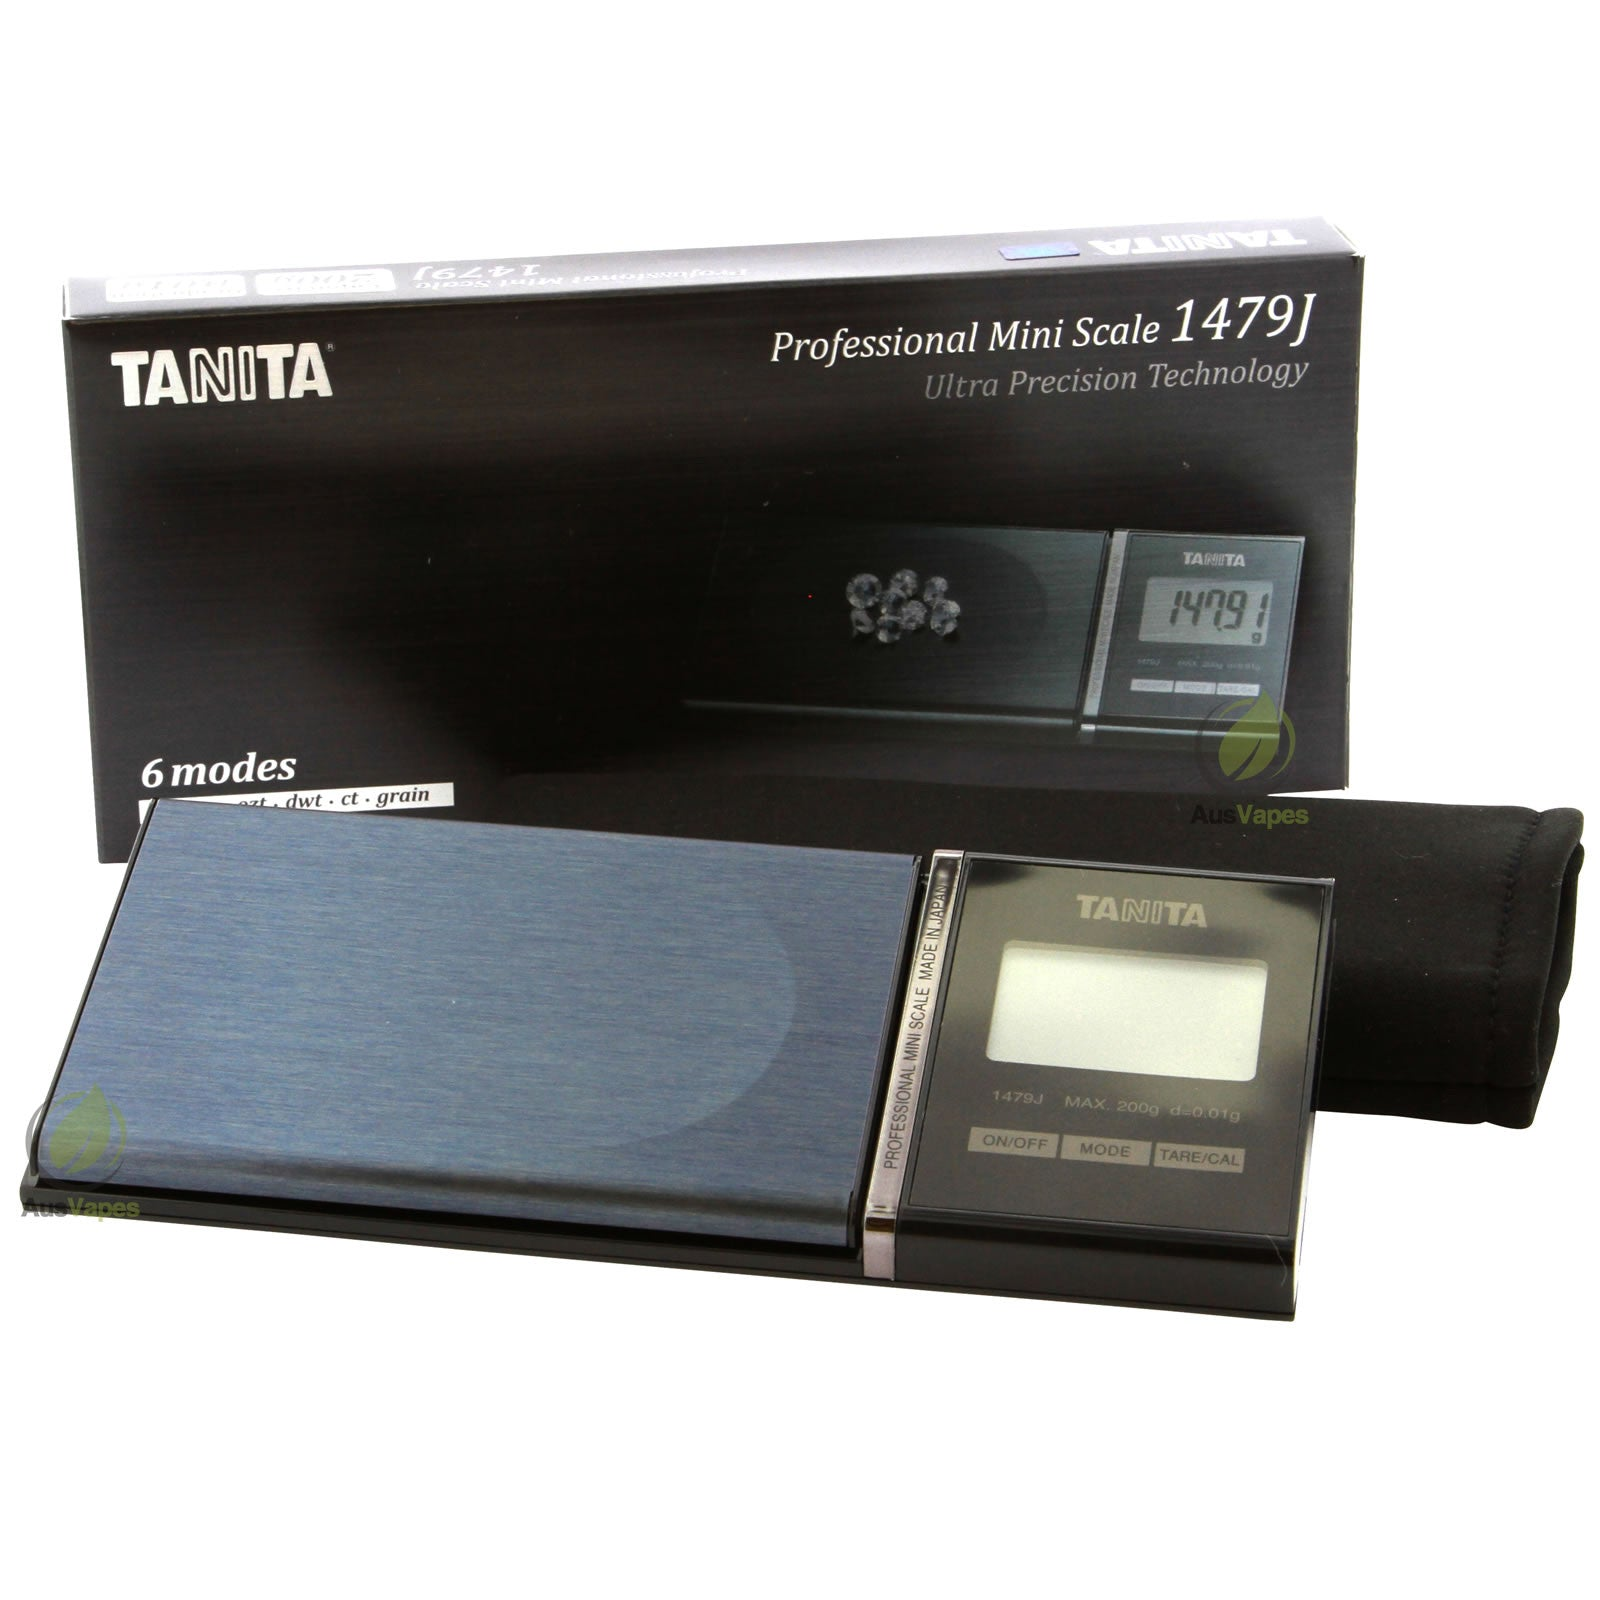 DISCONTINUED Tanita Professional 1479J Digital Scale 200g x 0.01g